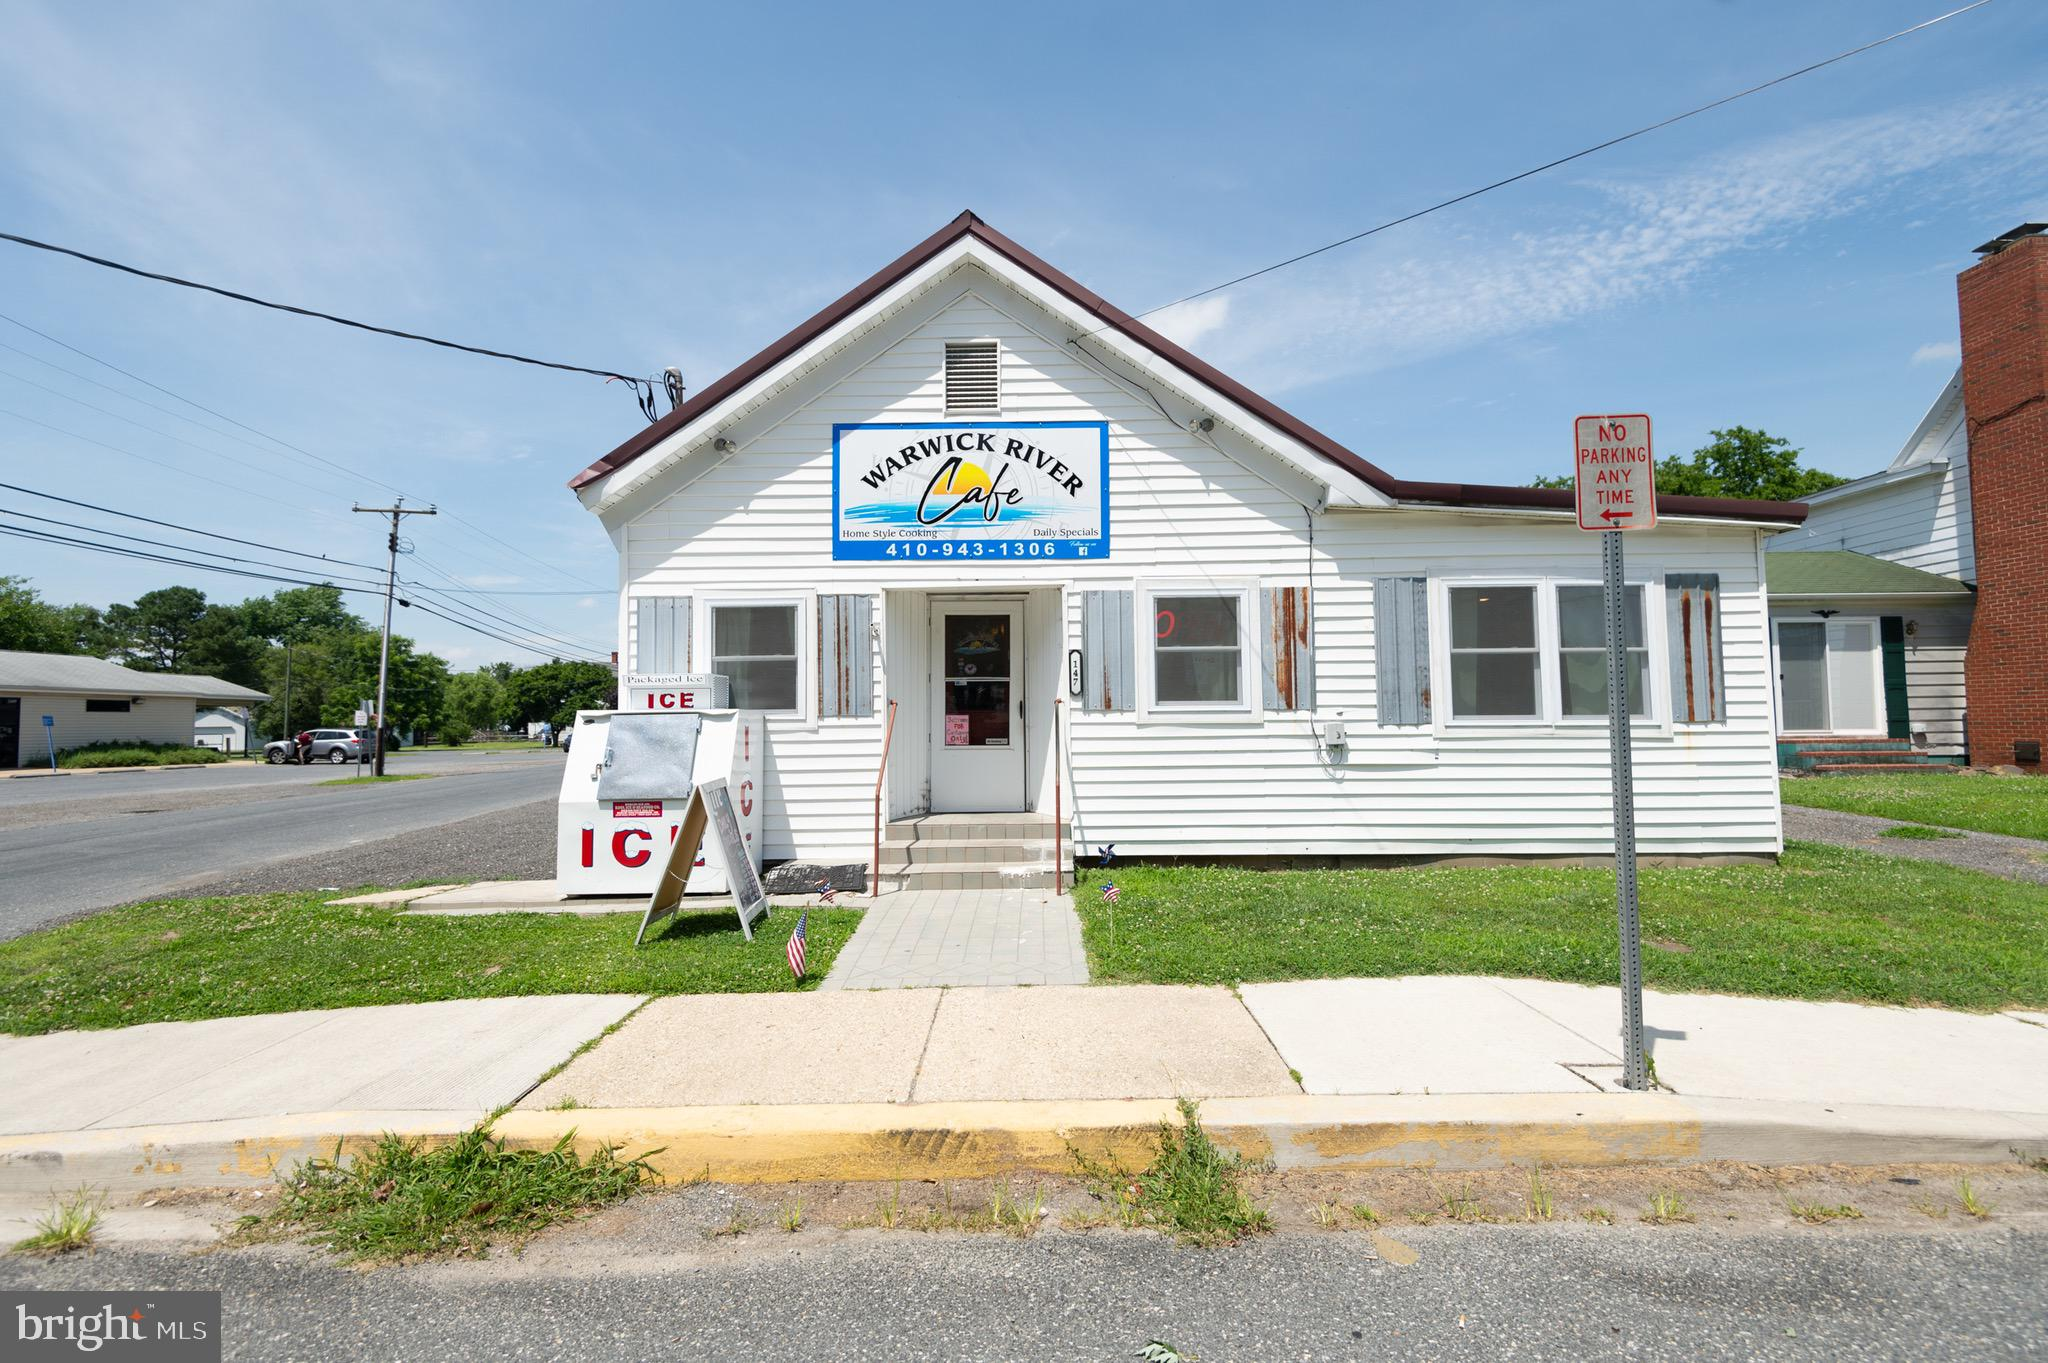 147 MAIN STREET, SECRETARY, MD 21664